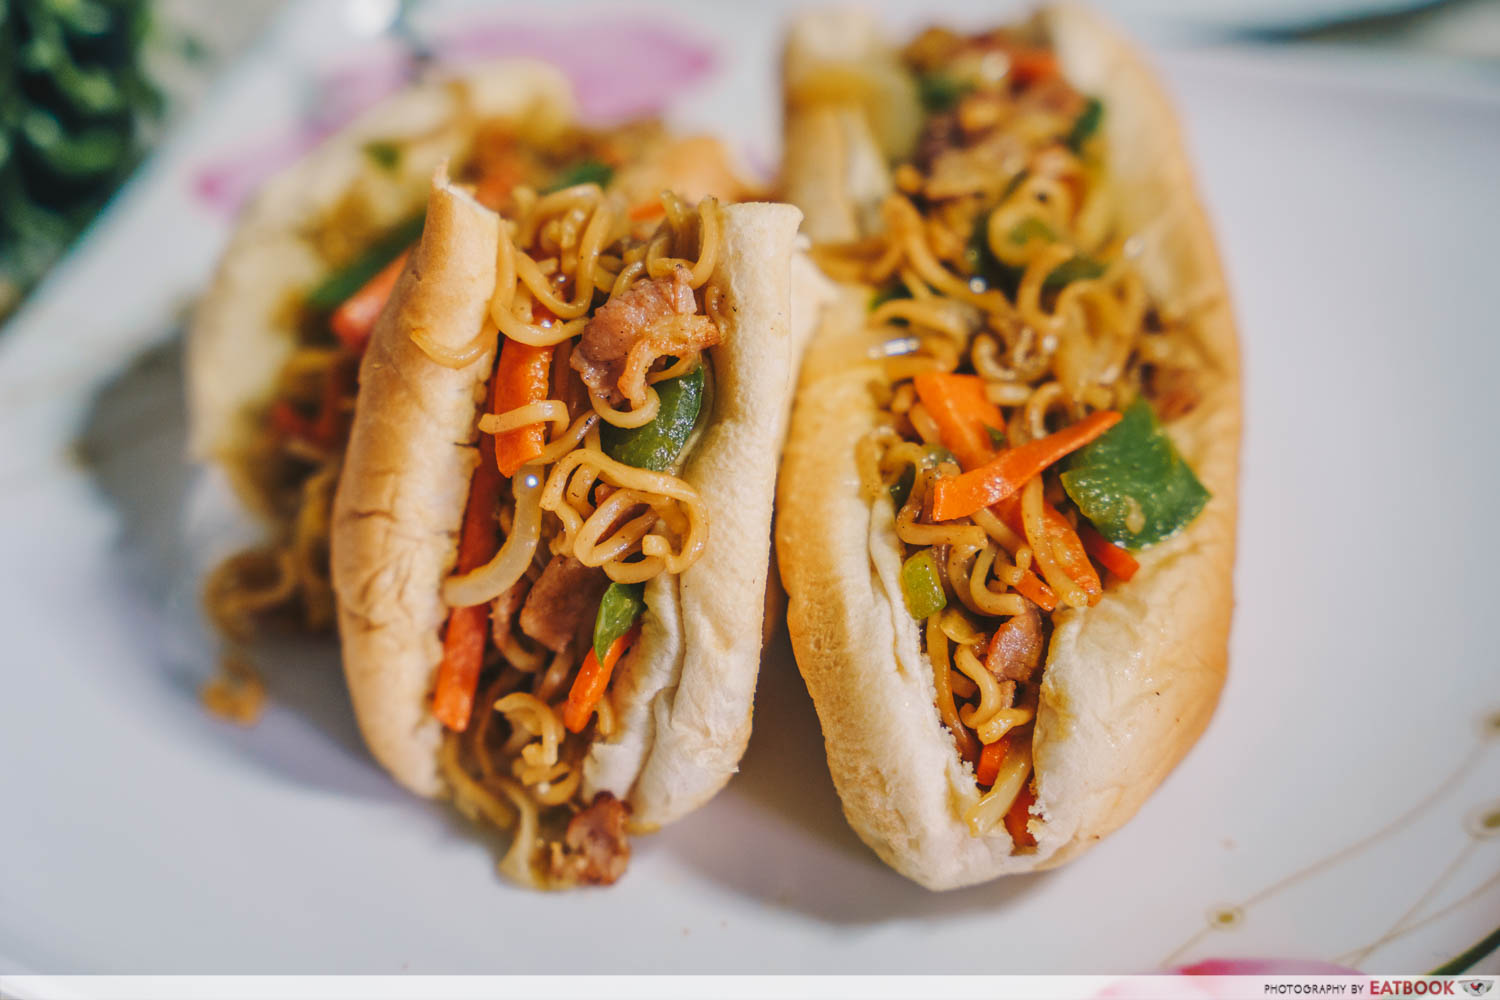 Sandwich Recipes - Yakisoba Bun